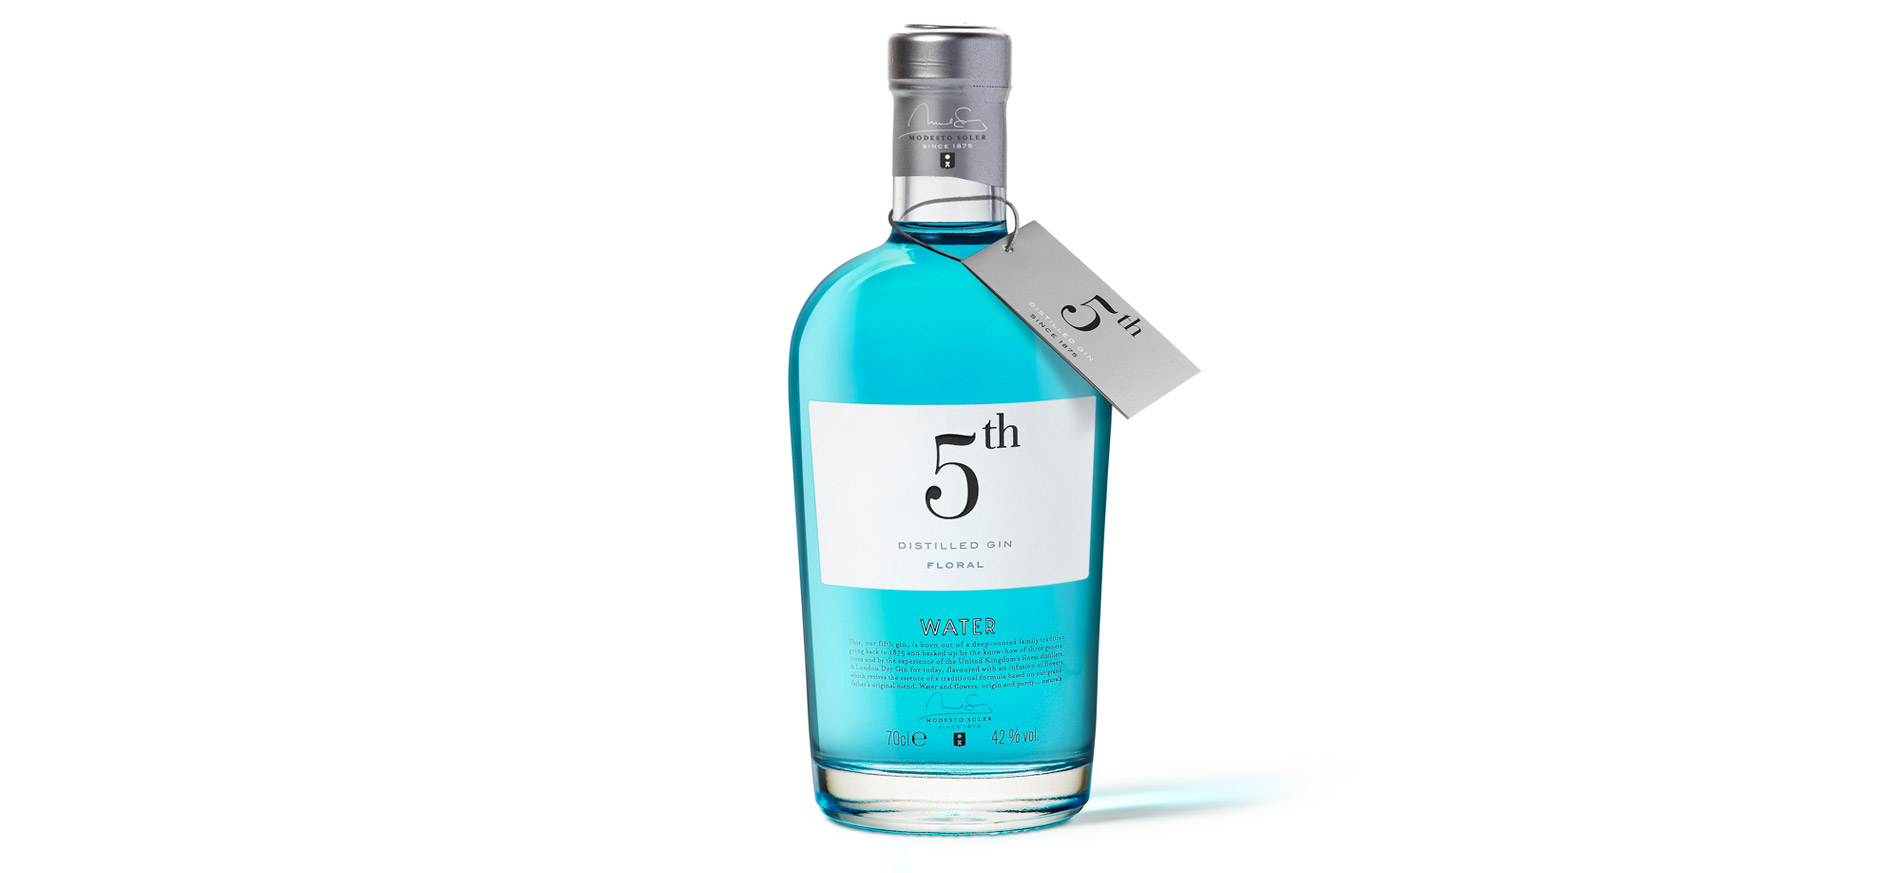 Diseño del Packaging de New 5th Gin de Destilerias del Maresme por Puigdemont Roca Design Agency